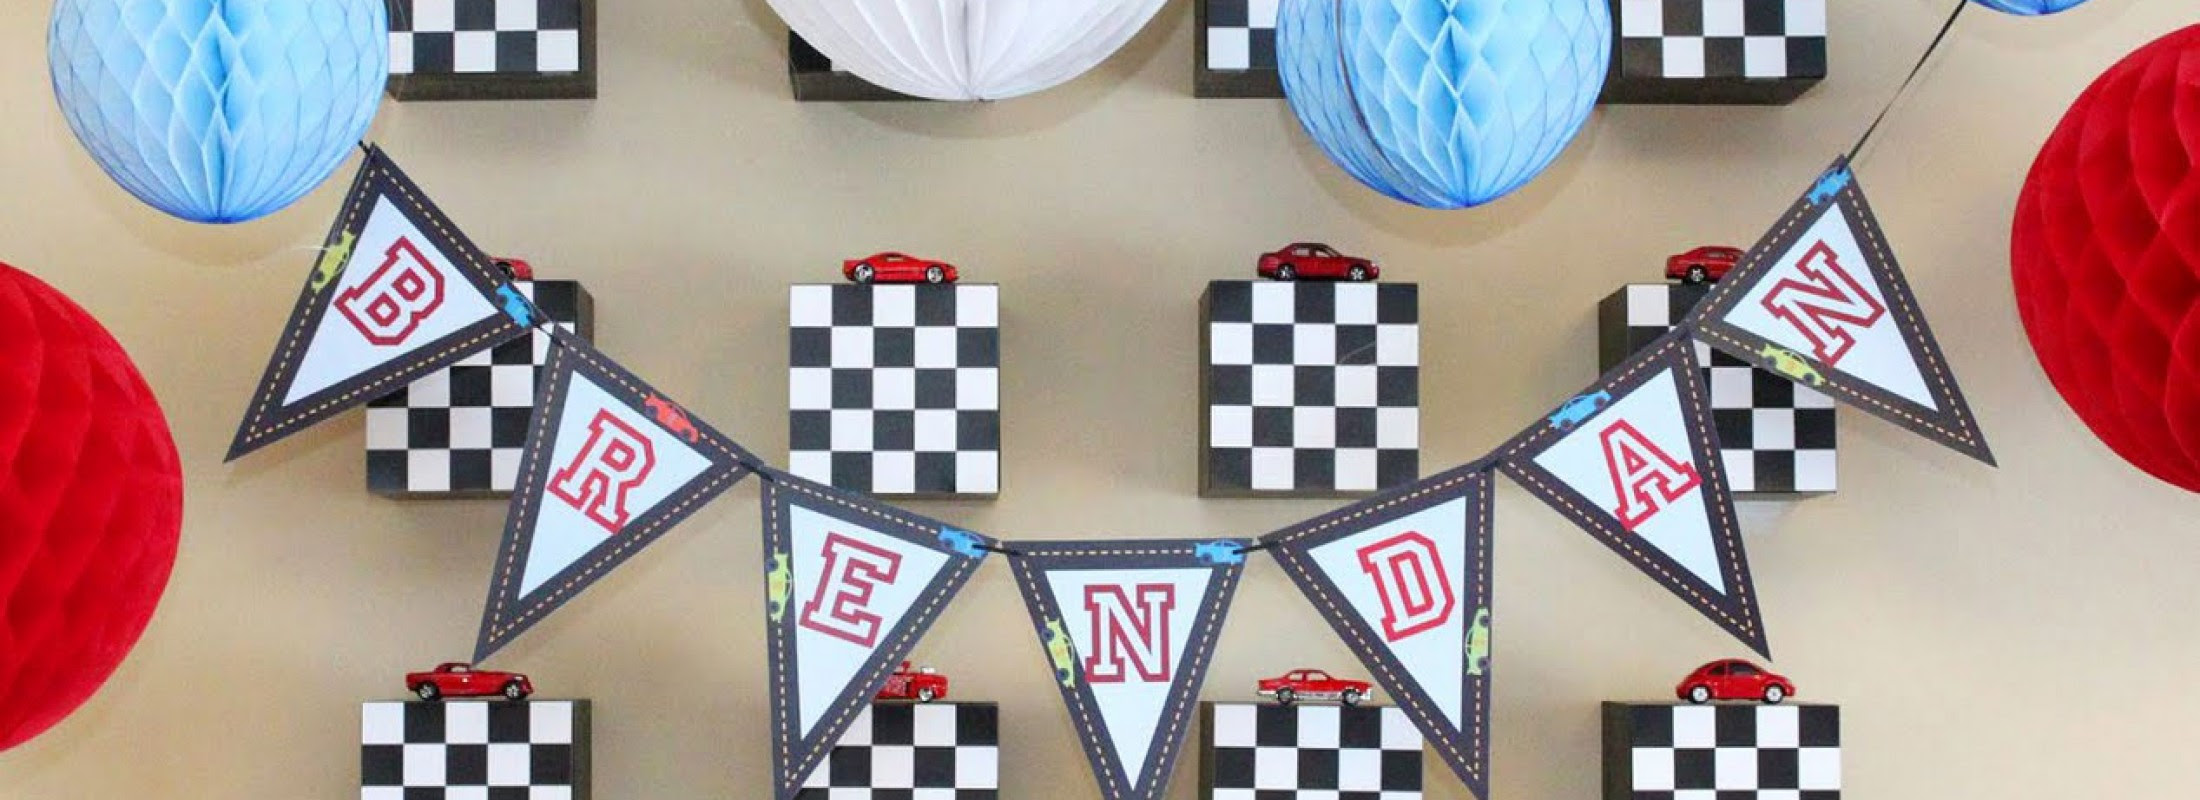 Race Car Birthday Party Decorations And Favors